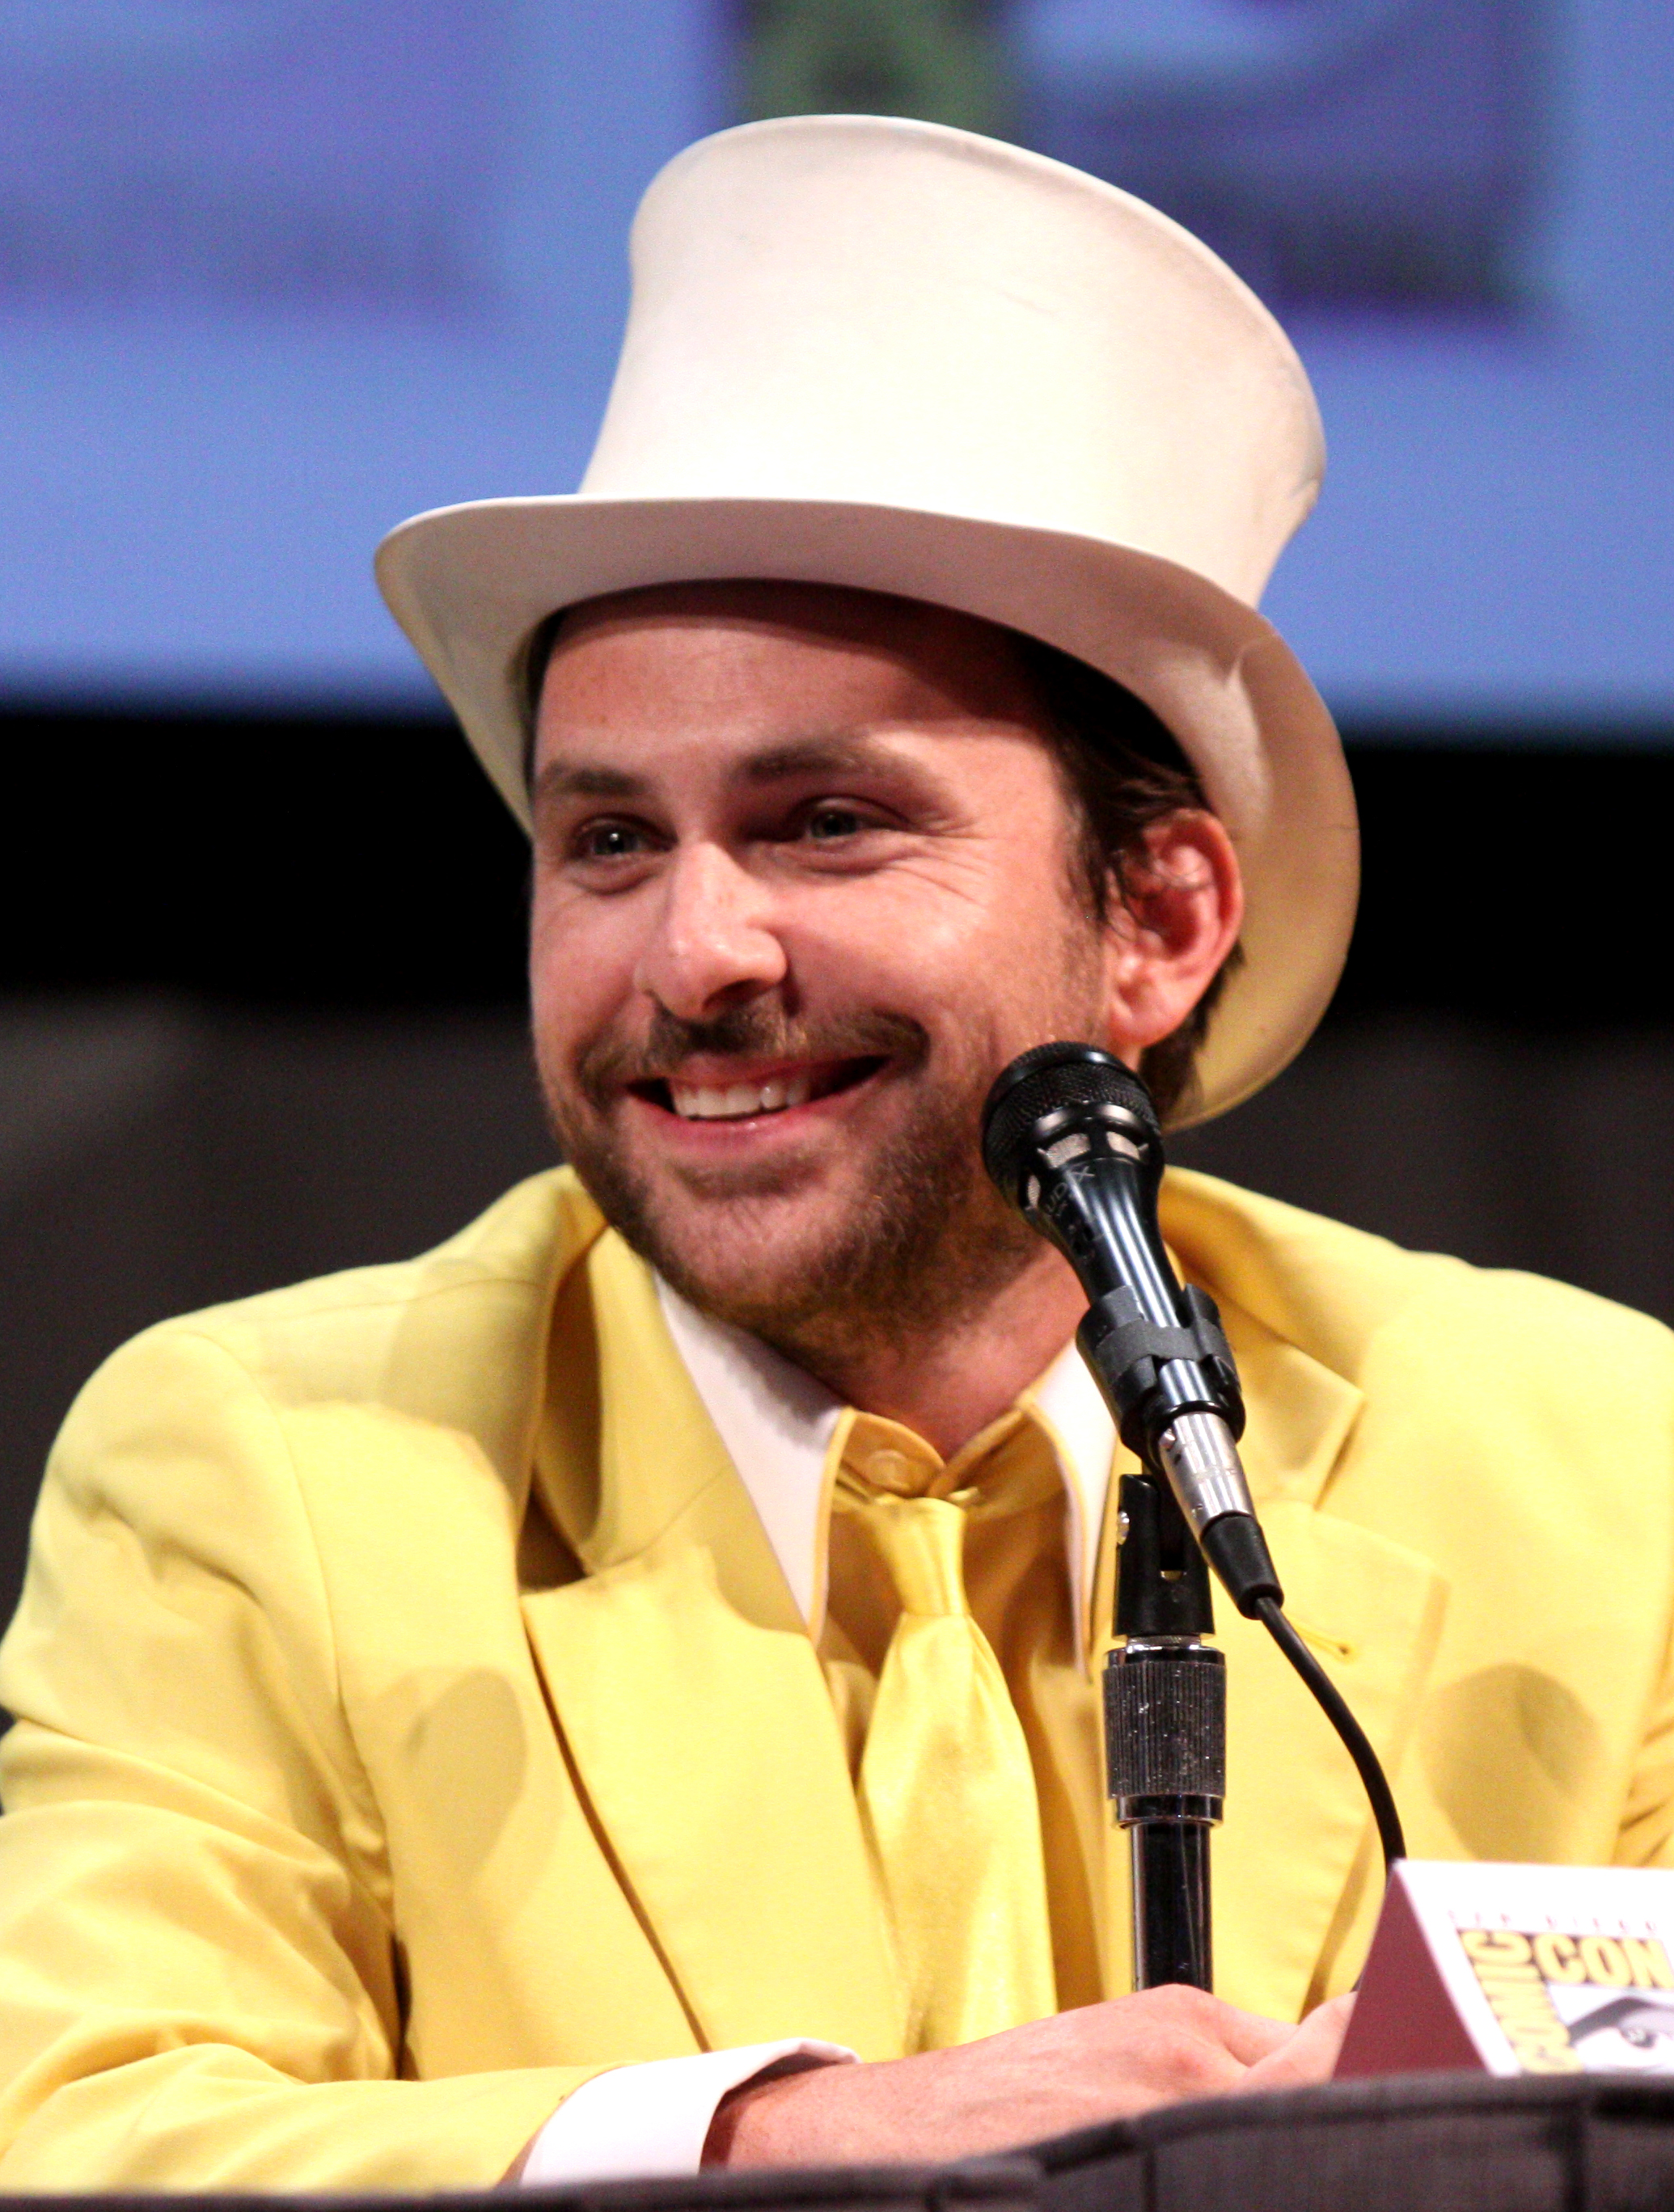 The 45-year old son of father Thomas C. Day and mother Mary Day Charlie Day in 2021 photo. Charlie Day earned a  million dollar salary - leaving the net worth at 14 million in 2021